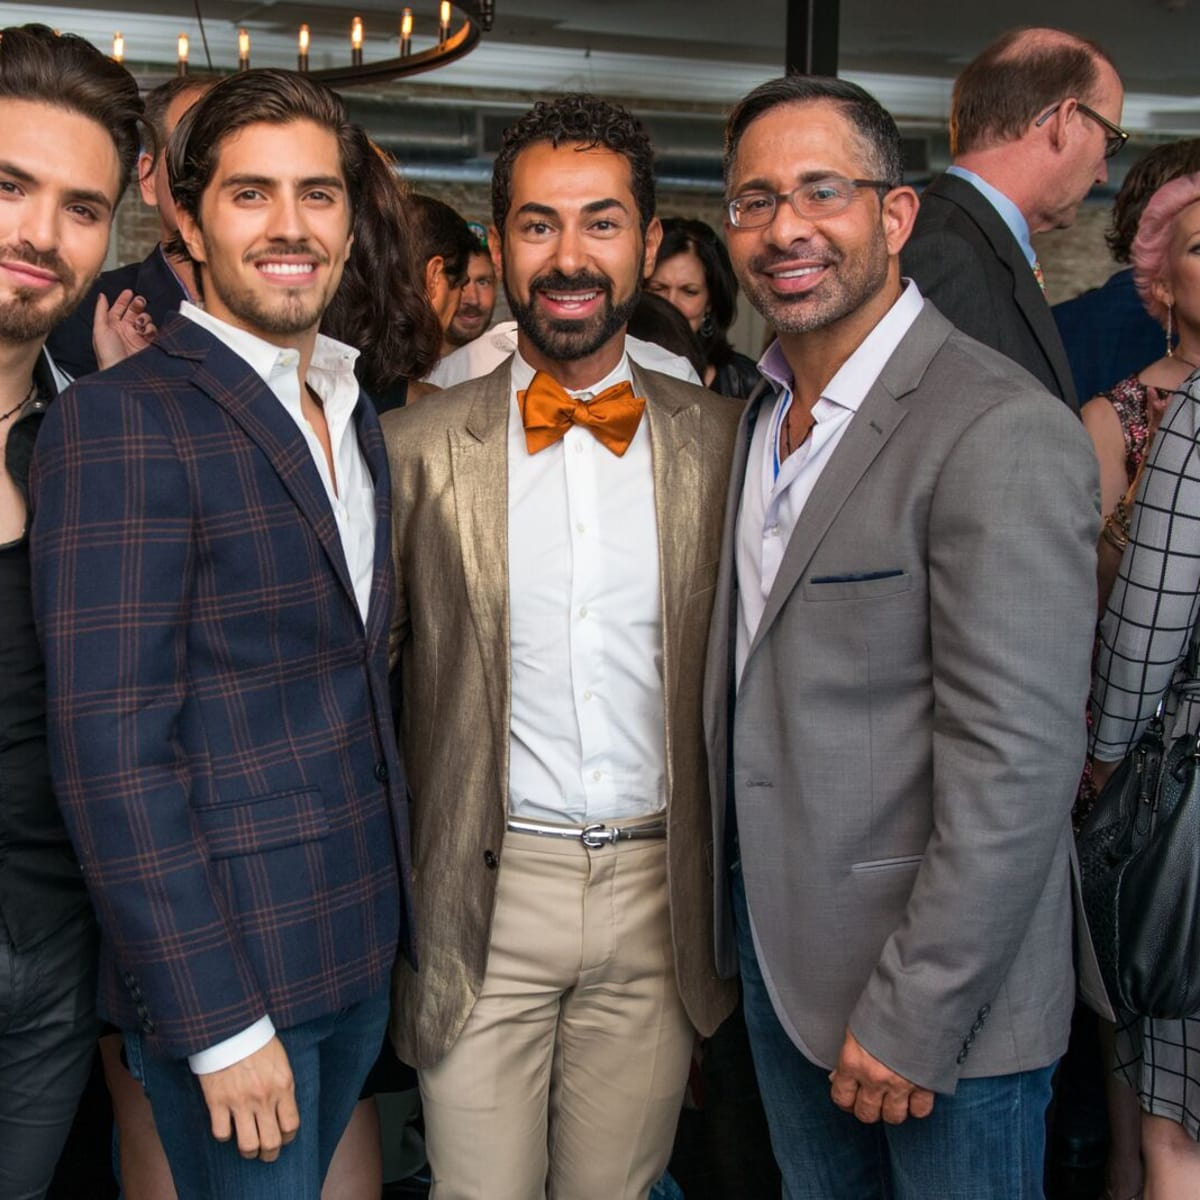 News, Shelby, Heart of Fashion, Aug. 2015, Xandro Canales, Sal Montes, Fady Armanious, Calvin Azzam